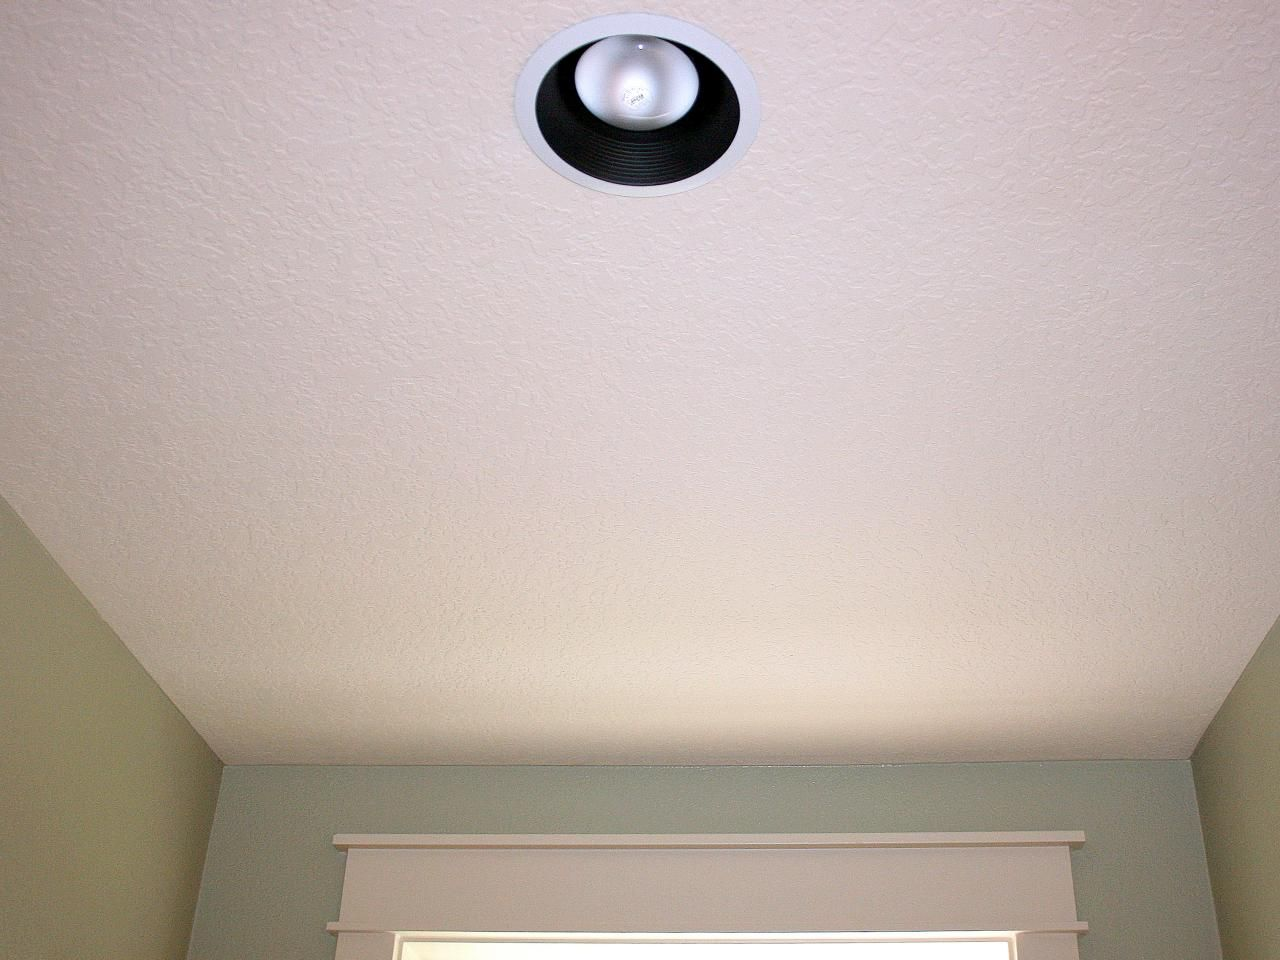 Replace Recessed Light With a Pendant Fixture | Hgtv, Pendants and ...